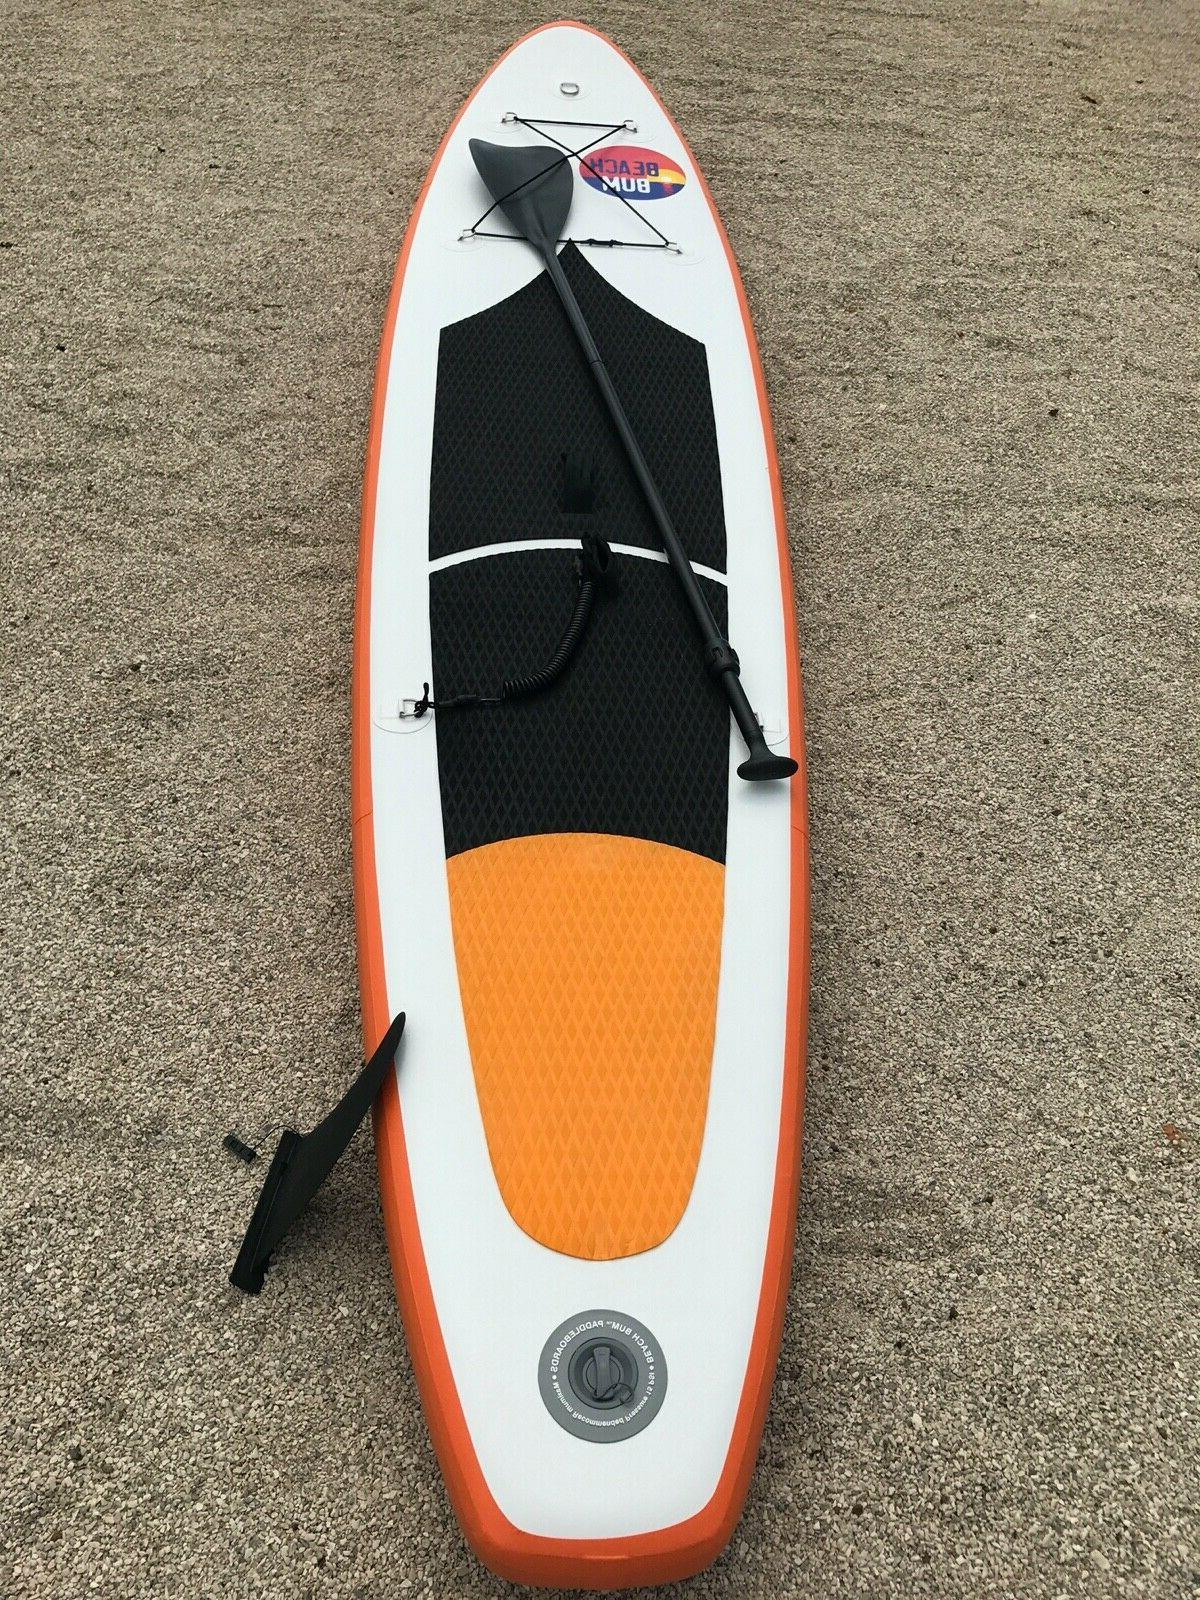 Beach Bum SPK2 10' 10'' Inflatable Stand Up Paddle Paddle and leash